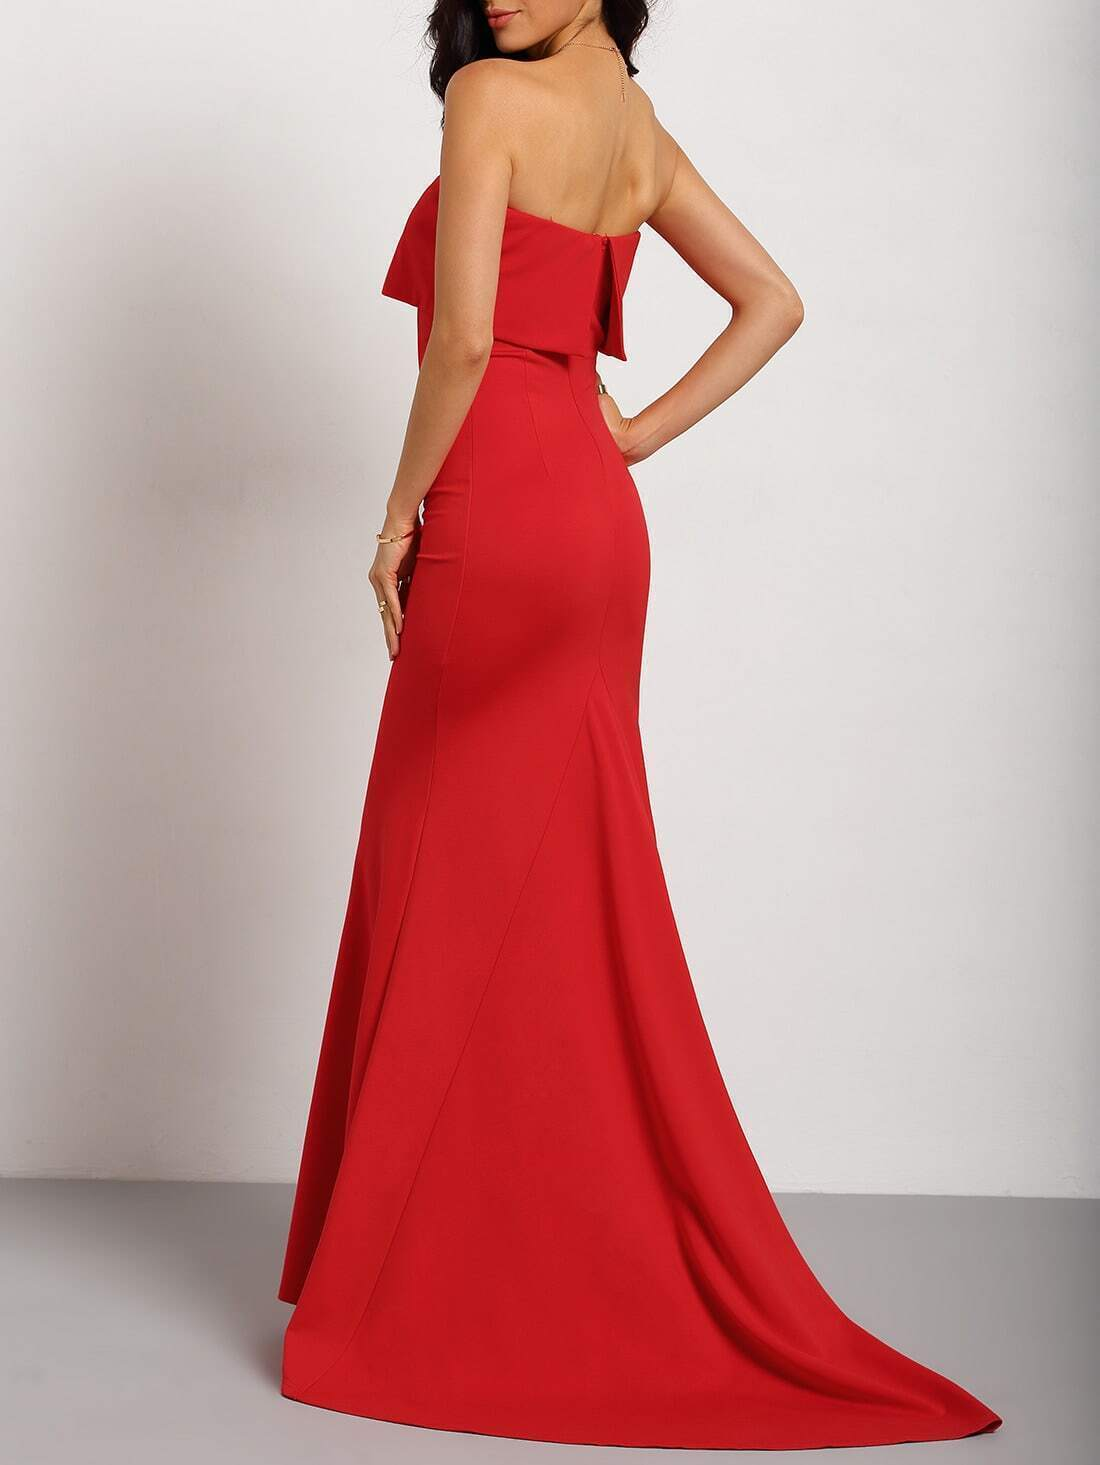 Red Strapless Maxi Dress EmmaCloth-Women Fast Fashion Online